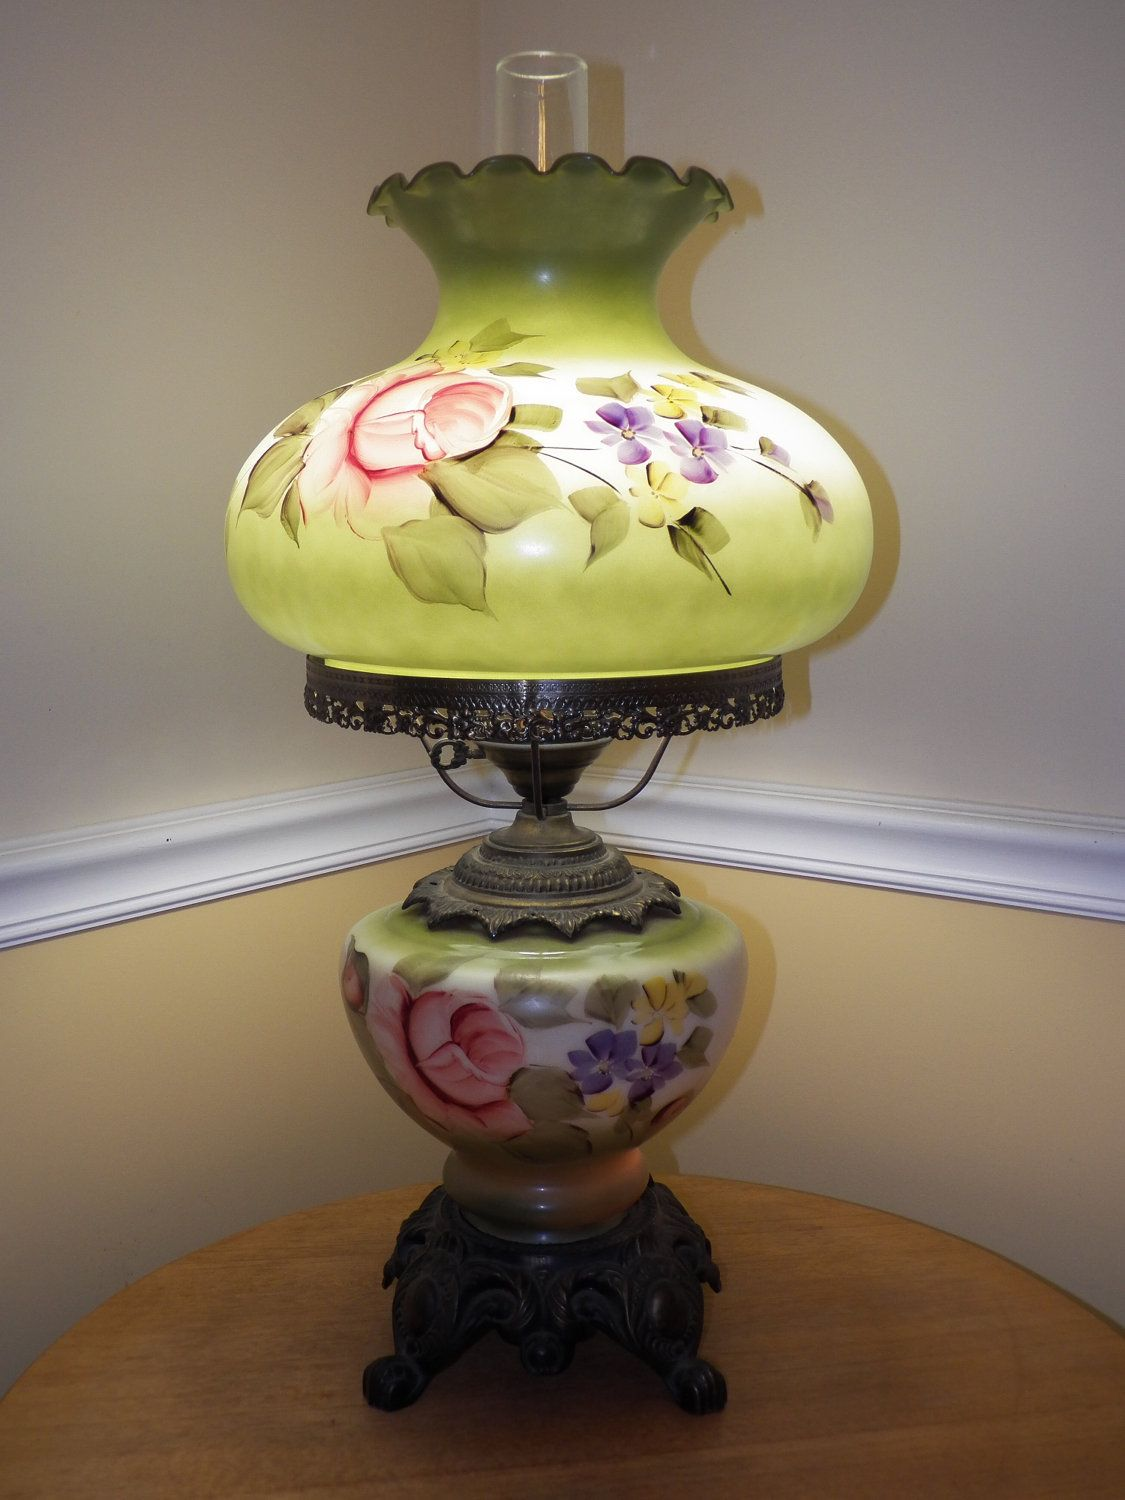 Vintage Glass Hand Painted Table Lamp Floral Flower Design Green With Brass Base Victorian Cottage Chic Home Acc Hand Painted Table Painted Table Oil Lamps